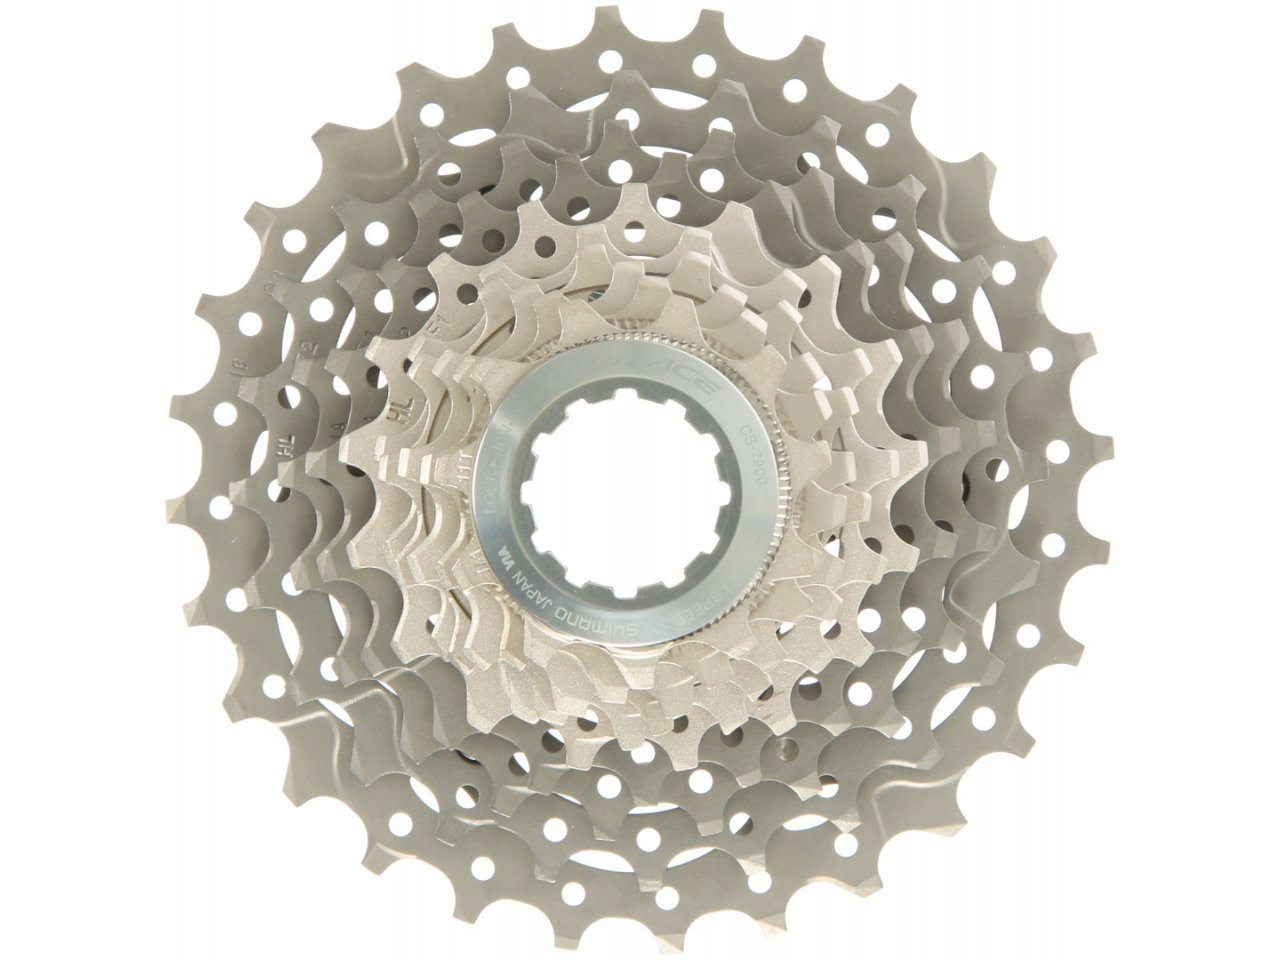 Shimano Dura-Ace CS-7900 10-Speed Bicycle Road Bike Cassette HG Sprocket 12-27T